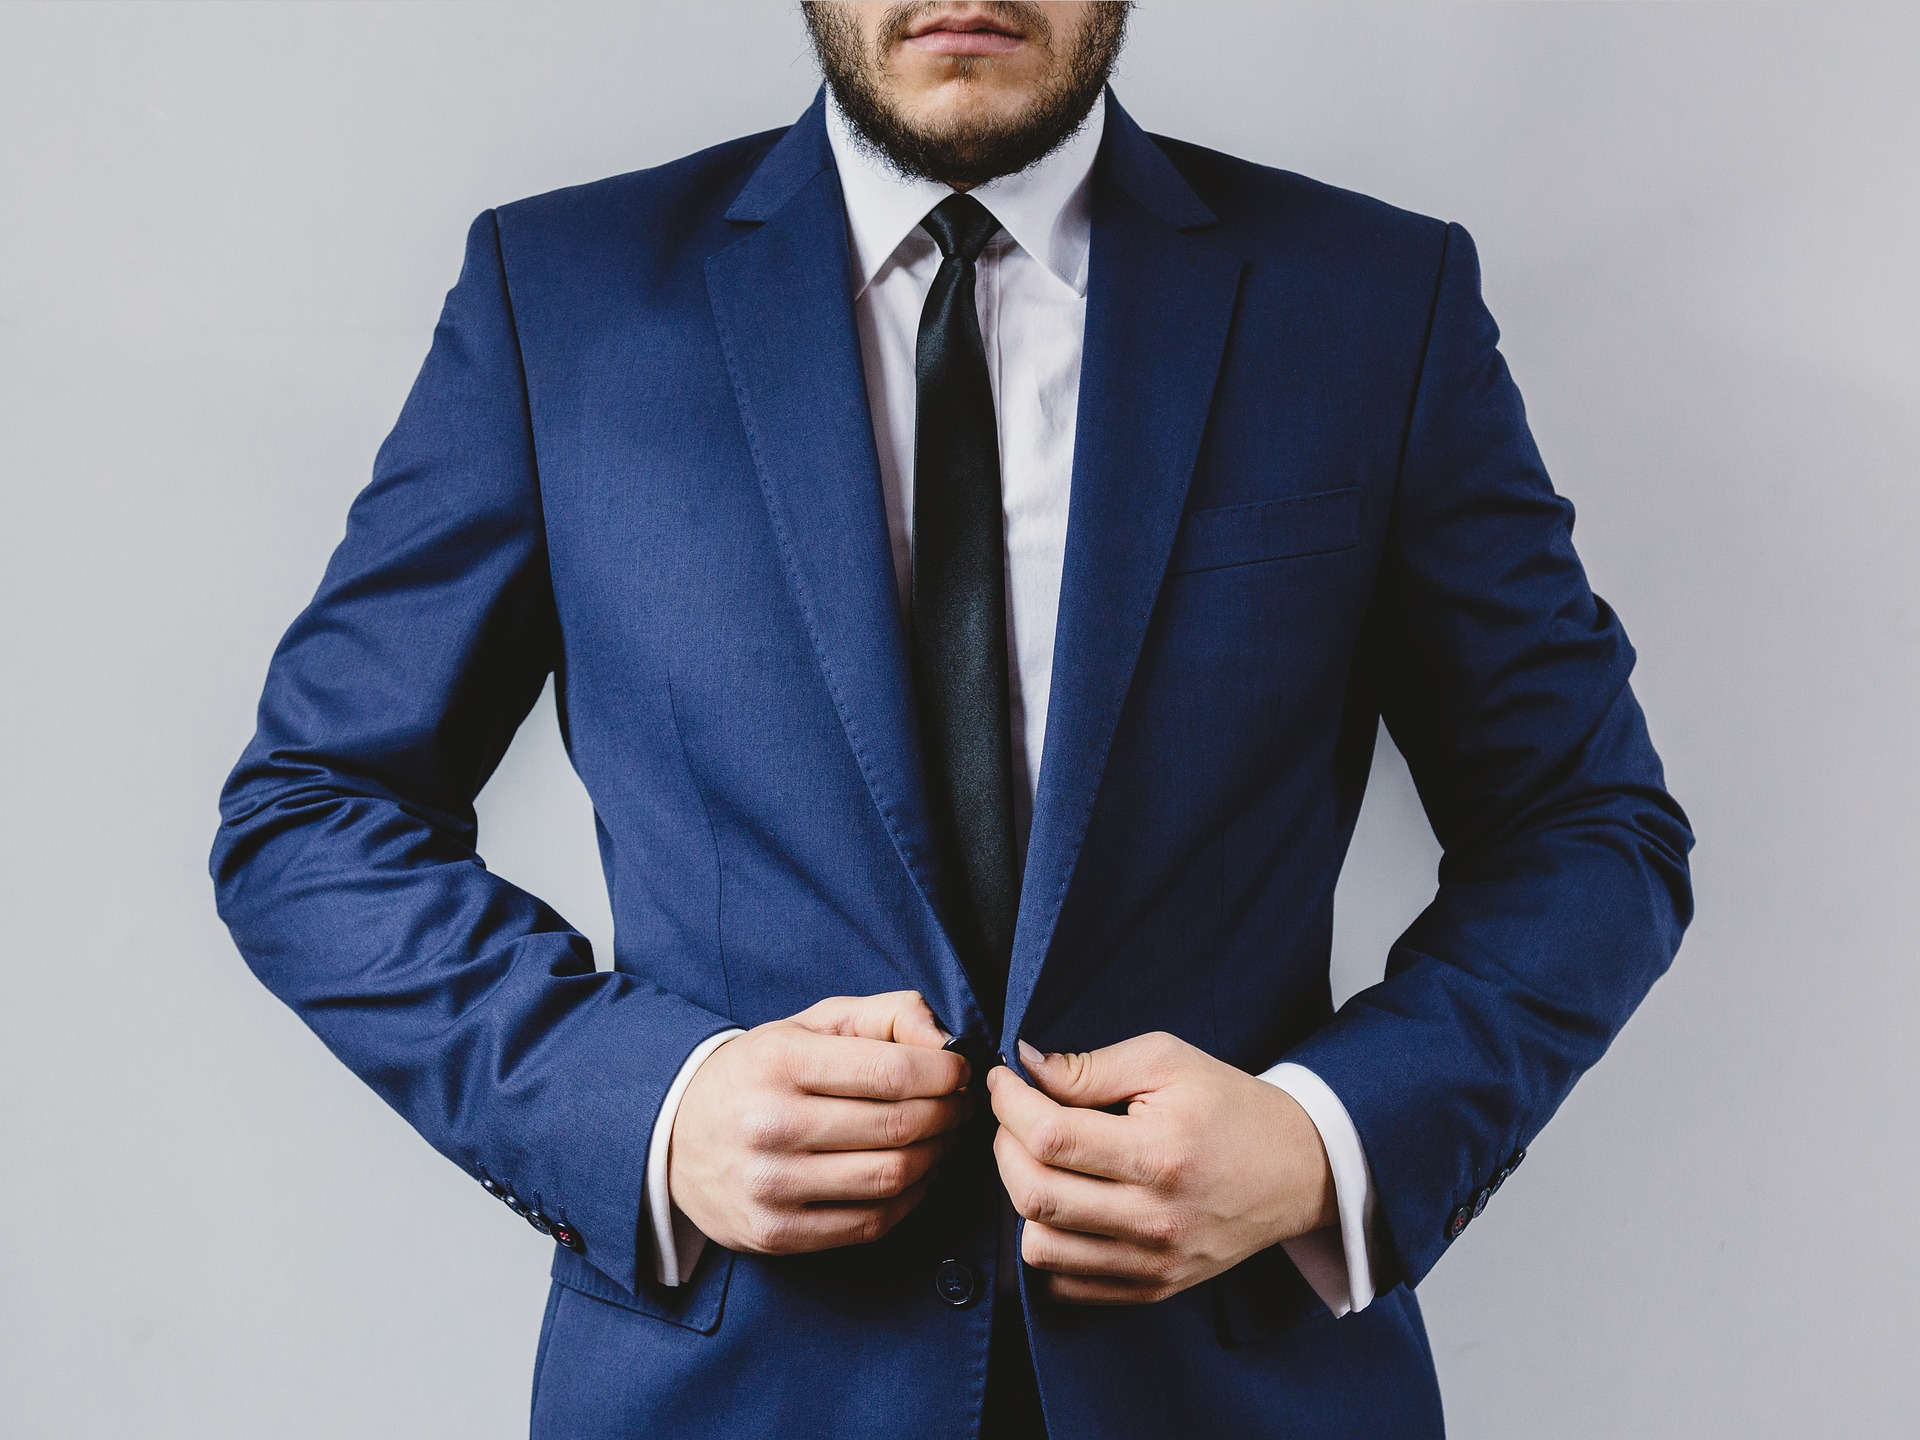 A man's body in a blue blazer and black tie. For an International Men's Day post on positive masculinity in erotica.